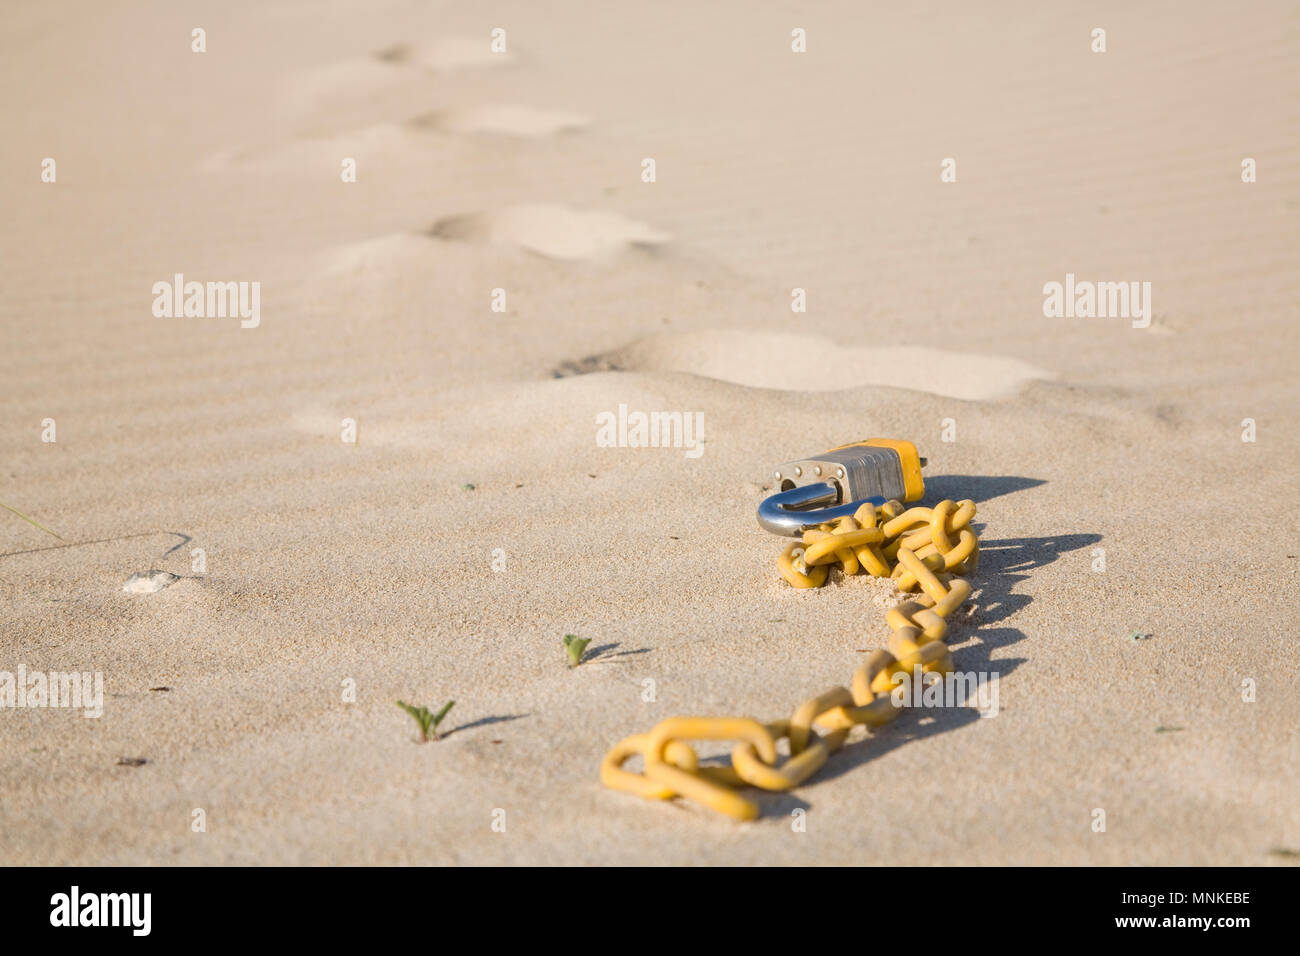 A breaking free concept with footprints leading away from